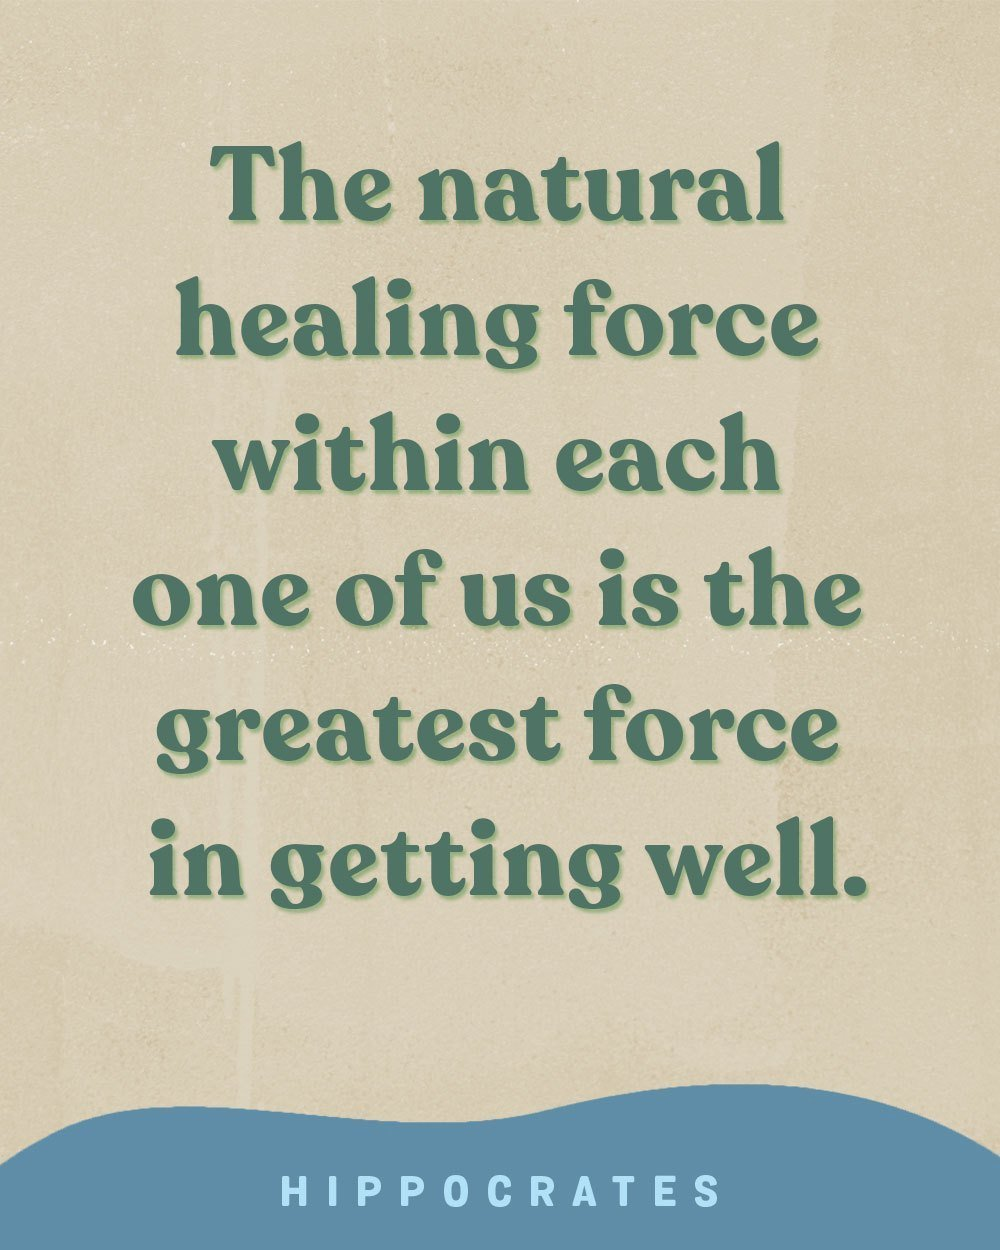 The natural healing force within each of us is the greatest force in getting well - Hippocrates quote